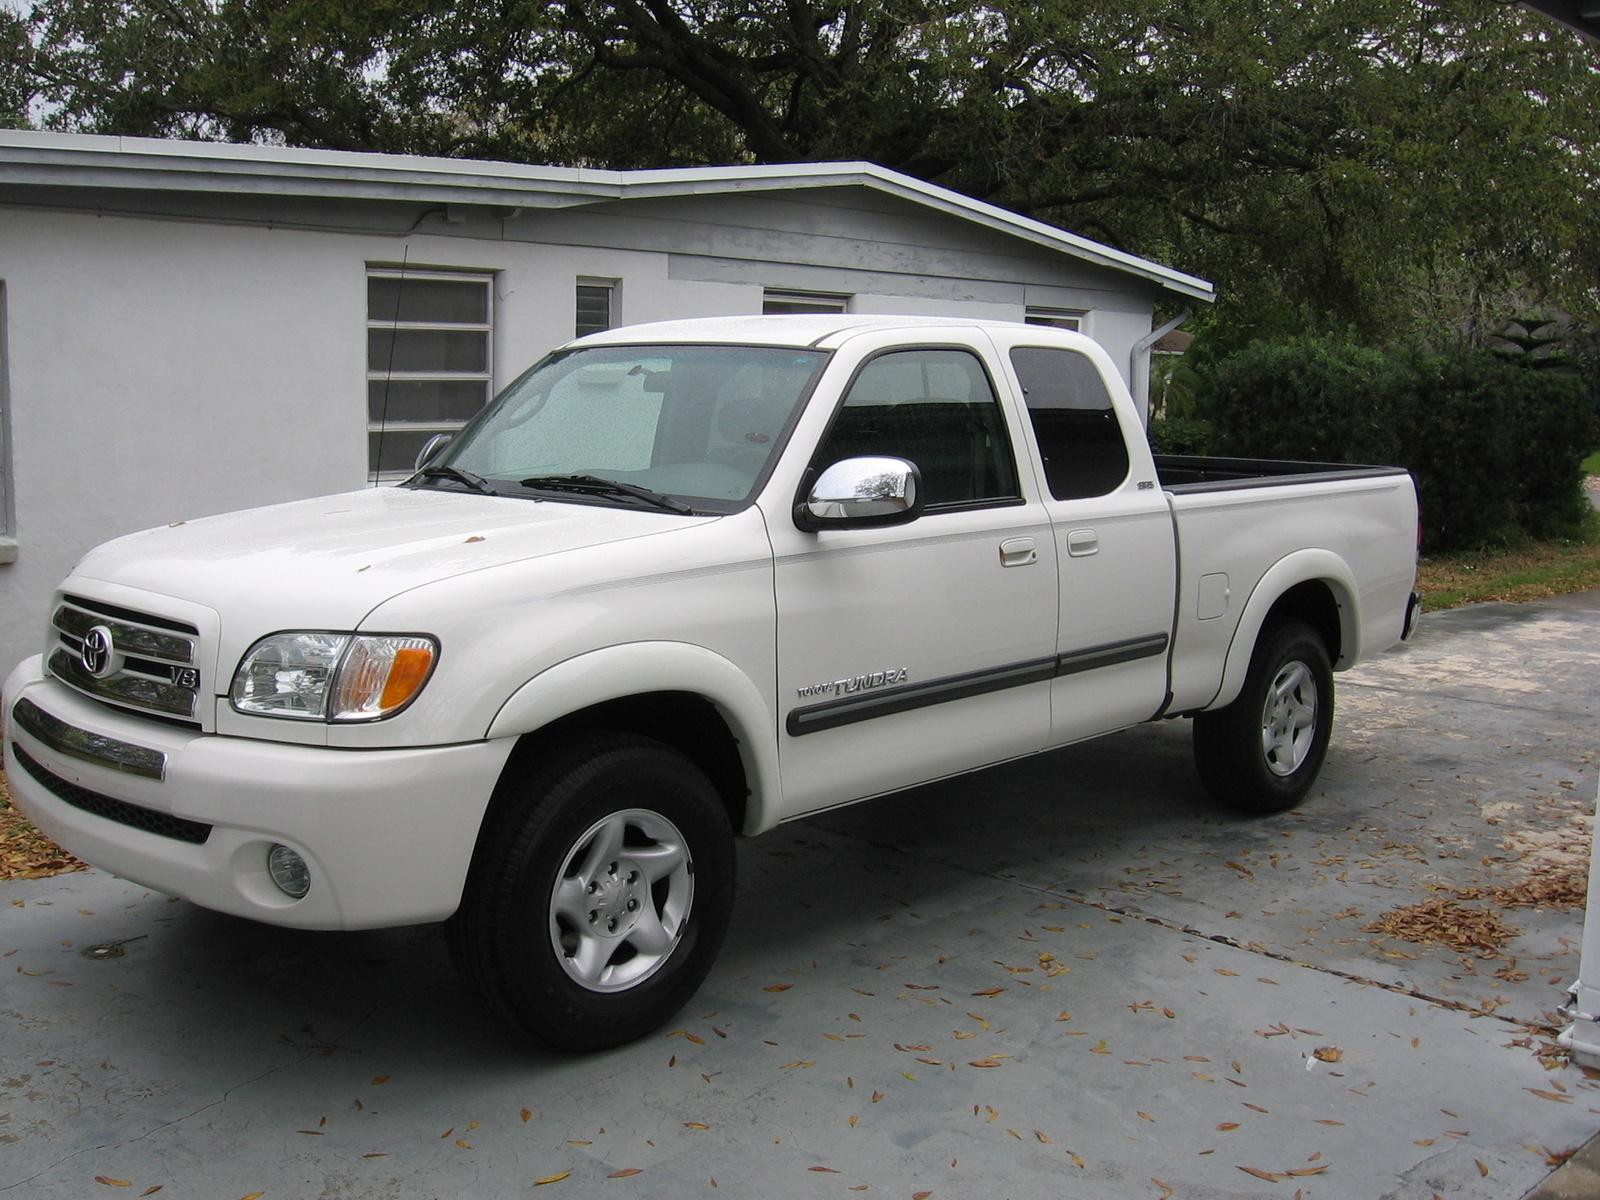 hight resolution of 800 1024 1280 1600 origin 2002 toyota tundra